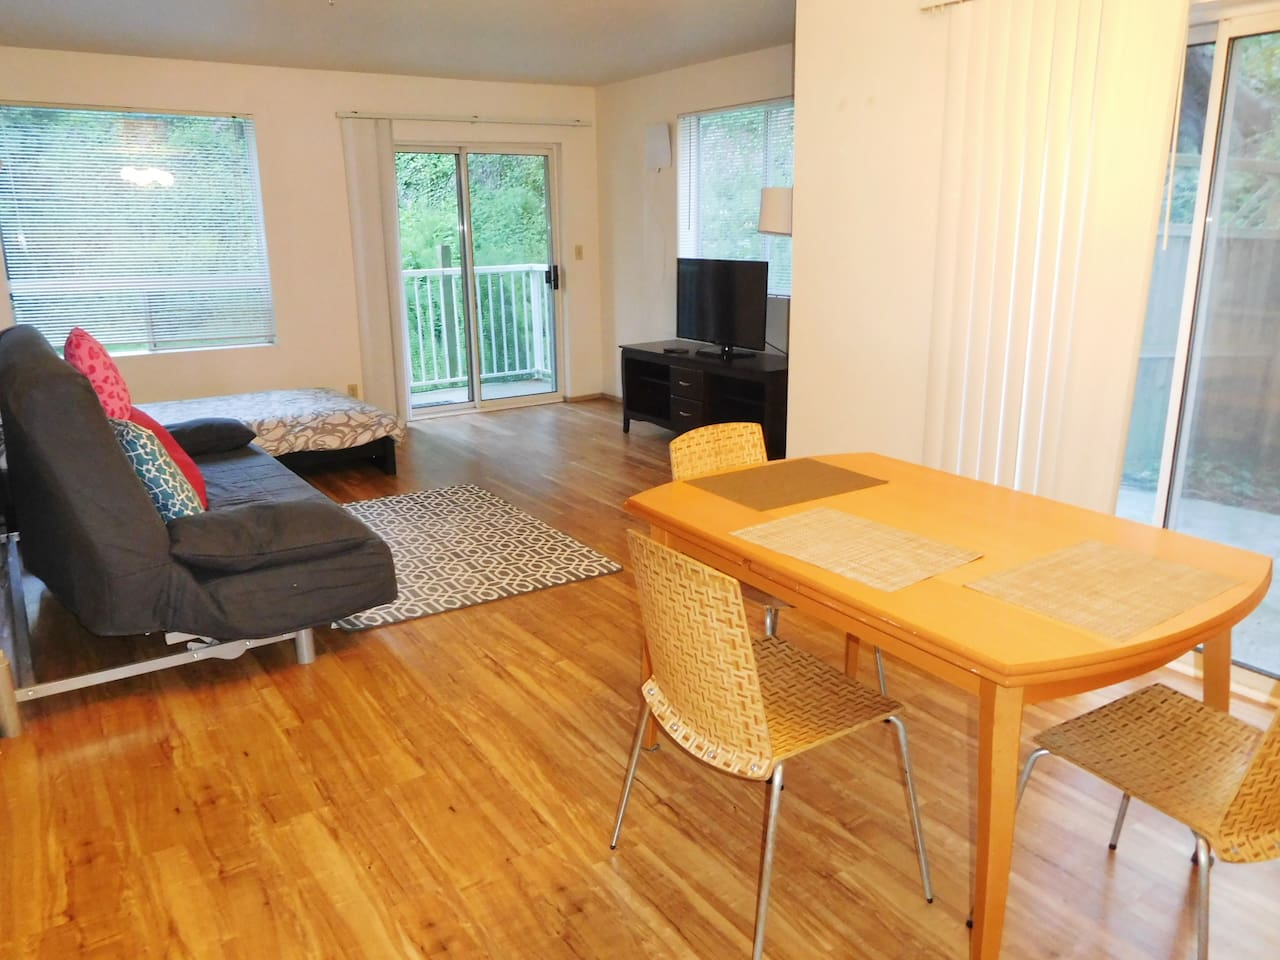 Spacious and serene one bedroom condo at a quiet cul-de-sac with a brand new beautiful floor